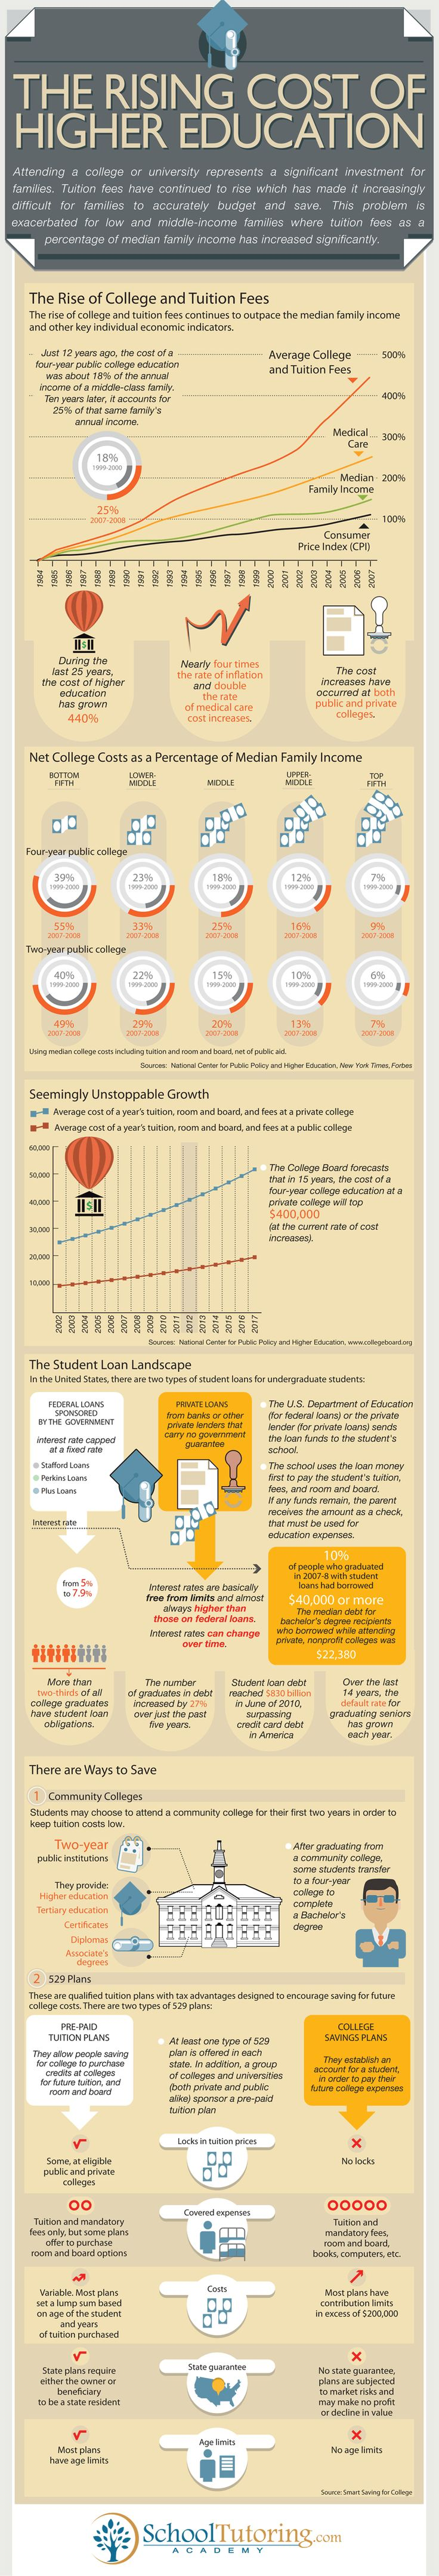 17 best images about higher education infographics here is an infographic by school tutoring about the rising cost of higher education sections on the rise of college and tuition fees net college costs